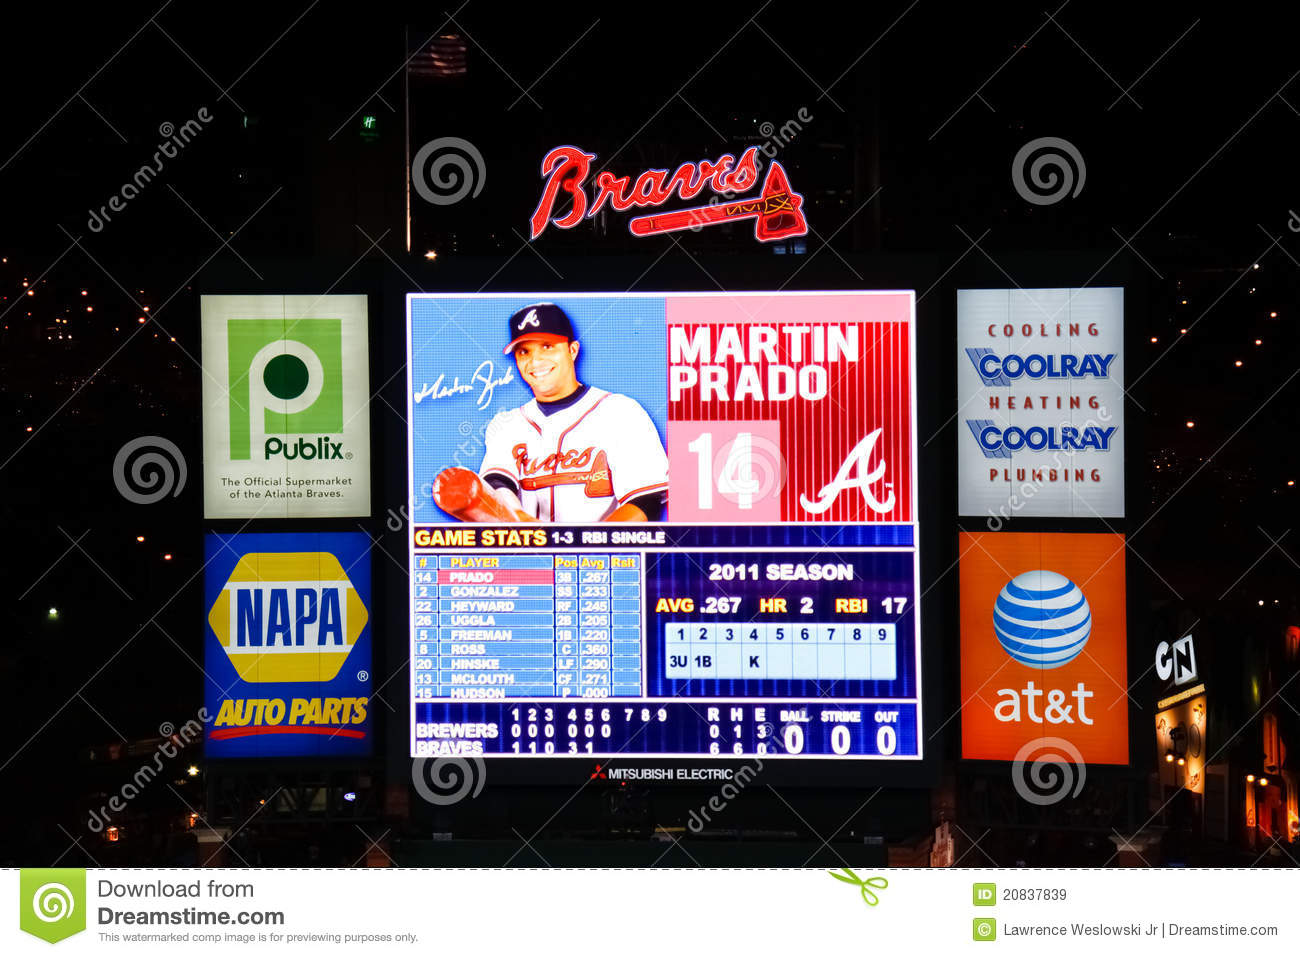 Atlantabraves com message board